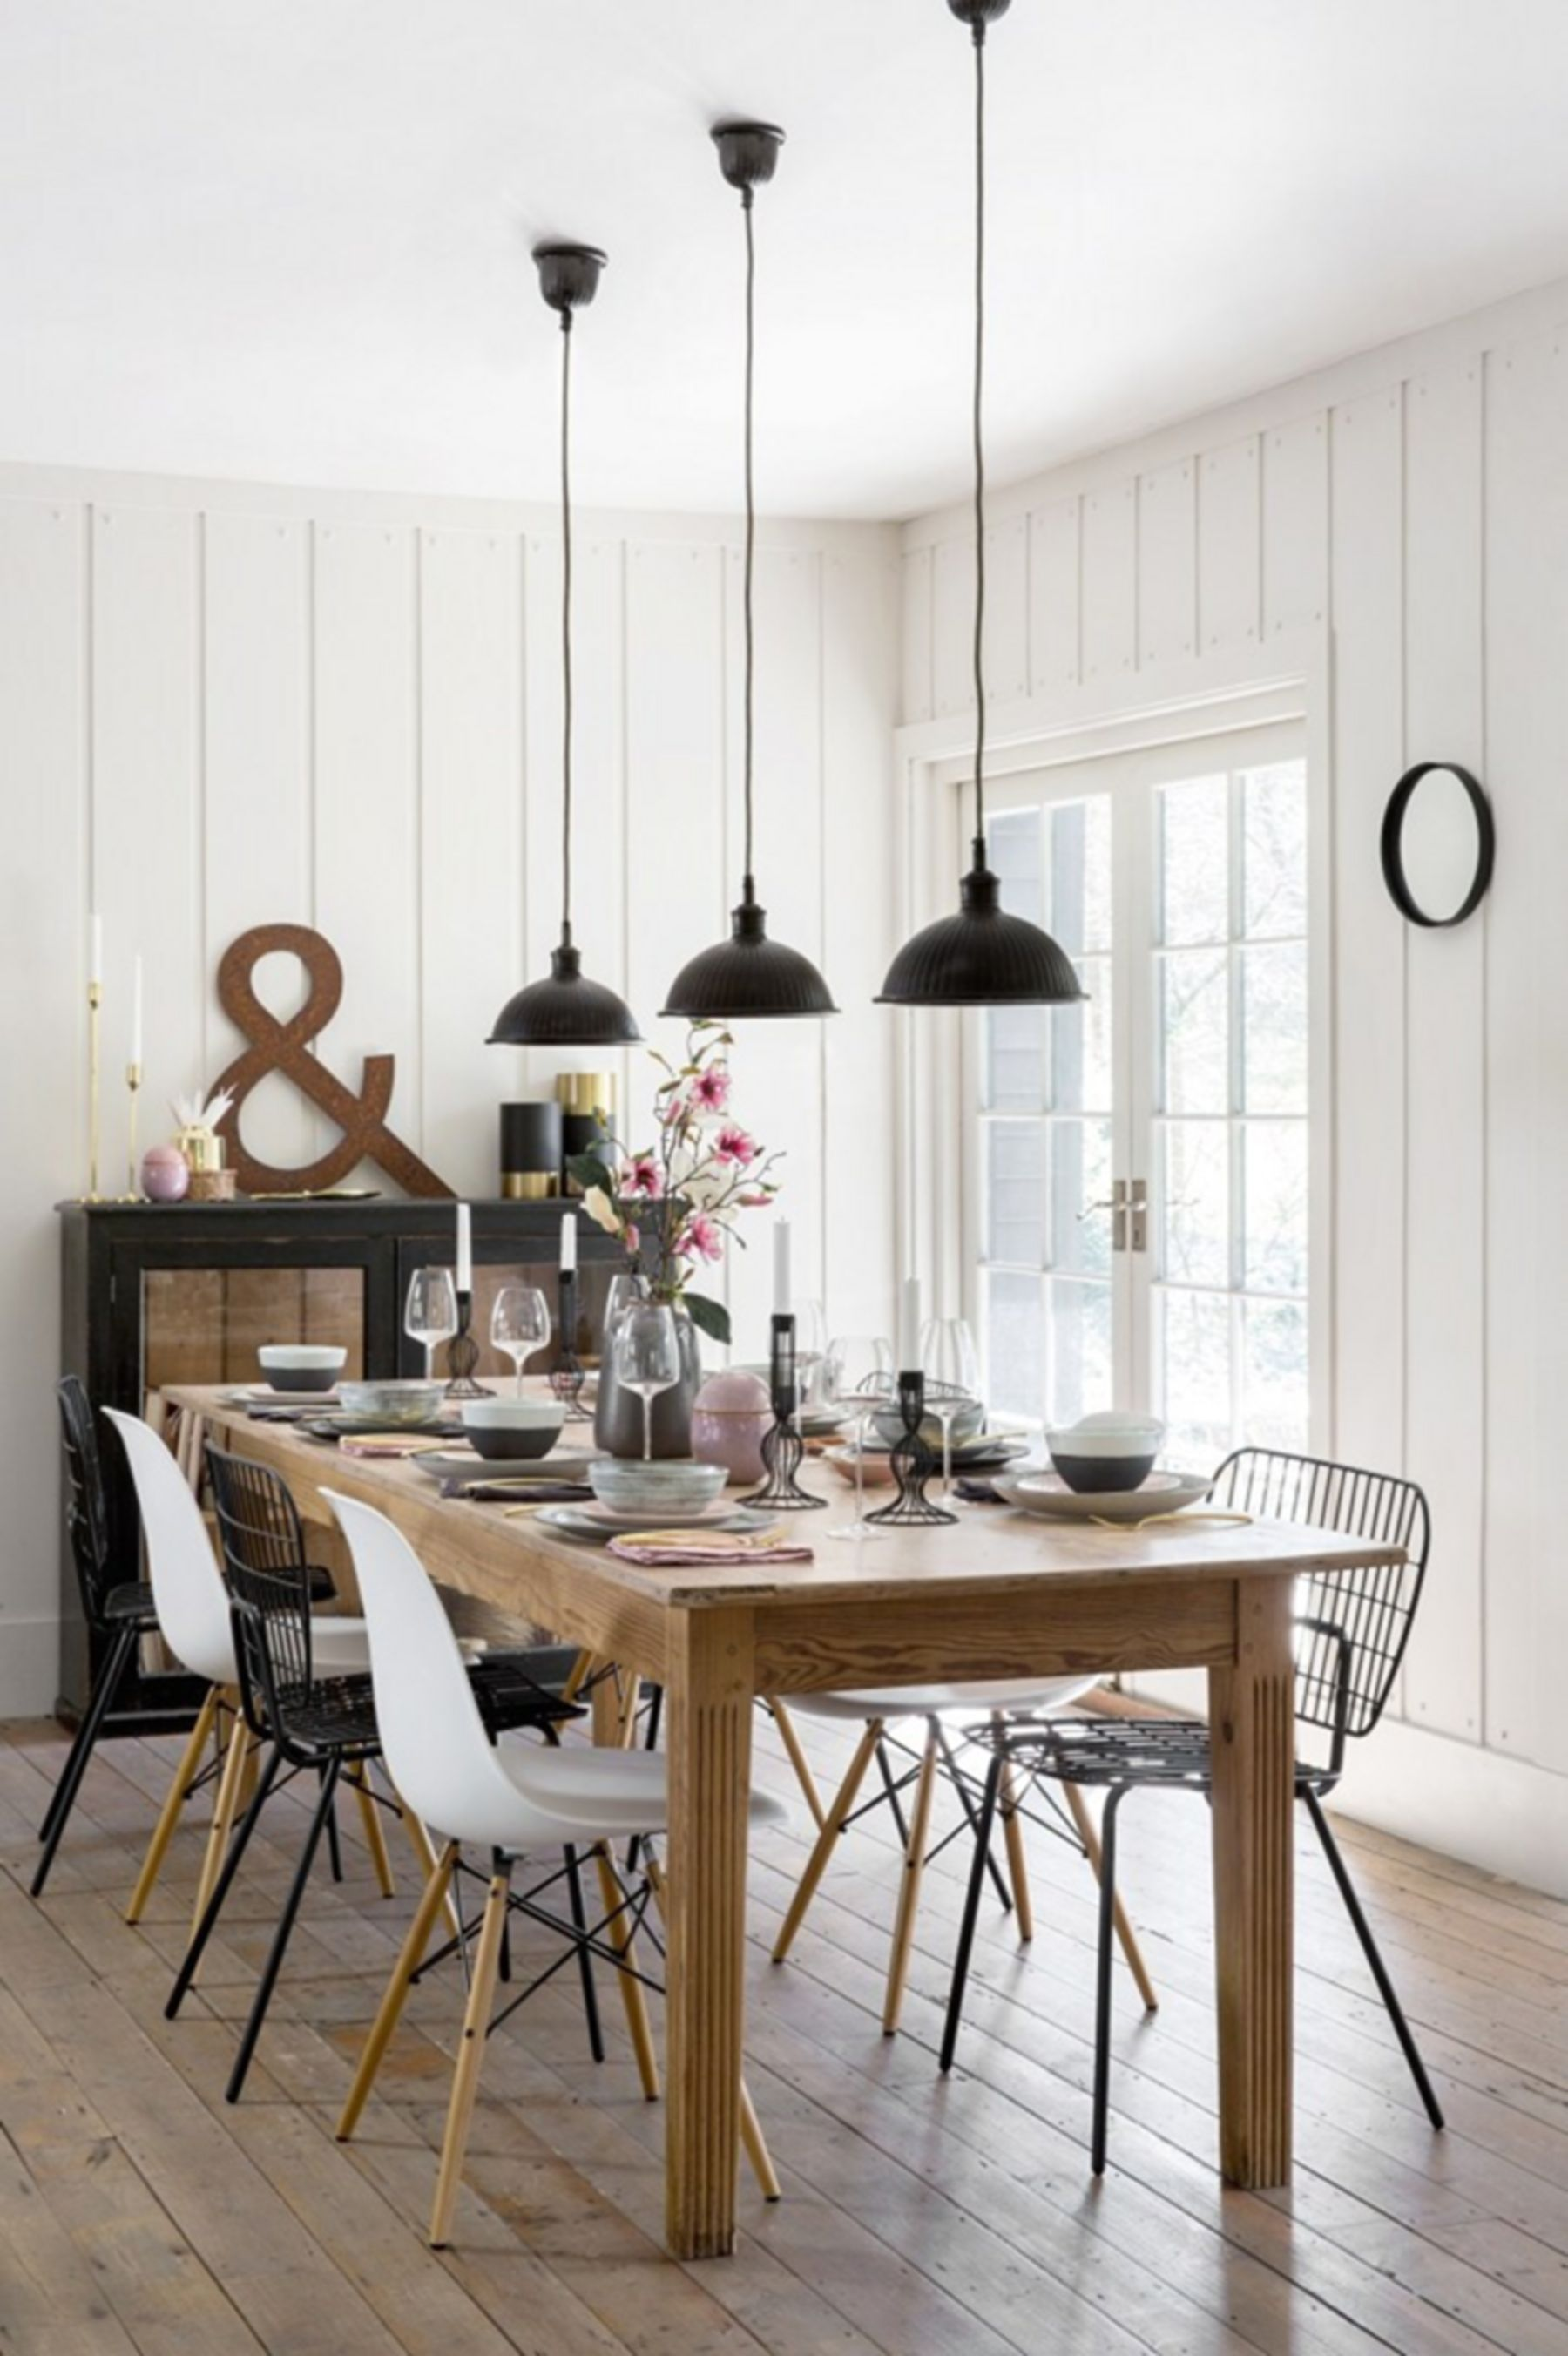 Top 12 Creative Dining Table Design Ideas To Make Your Dining Room Beautiful Scandi Dining Room Scandinavian Dining Room Stylish Dining Room